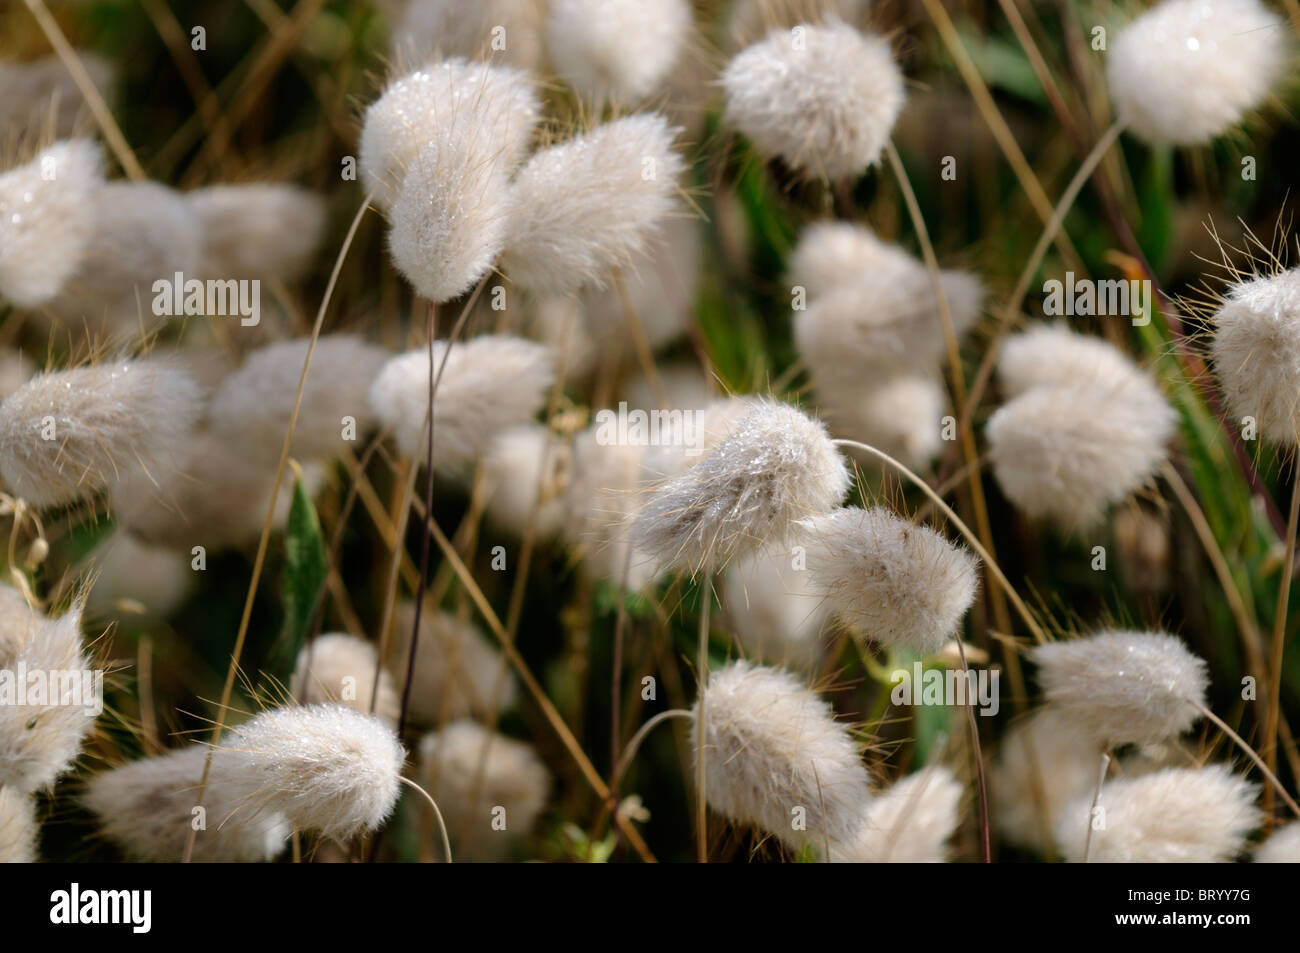 Bunny Tails Ornamental Grass Lagurus ovatus hares tail bunny tail grass panicle inflorescence lagurus ovatus hares tail bunny tail grass panicle inflorescence rabbits tail annual ornamental plant creamy white awn workwithnaturefo